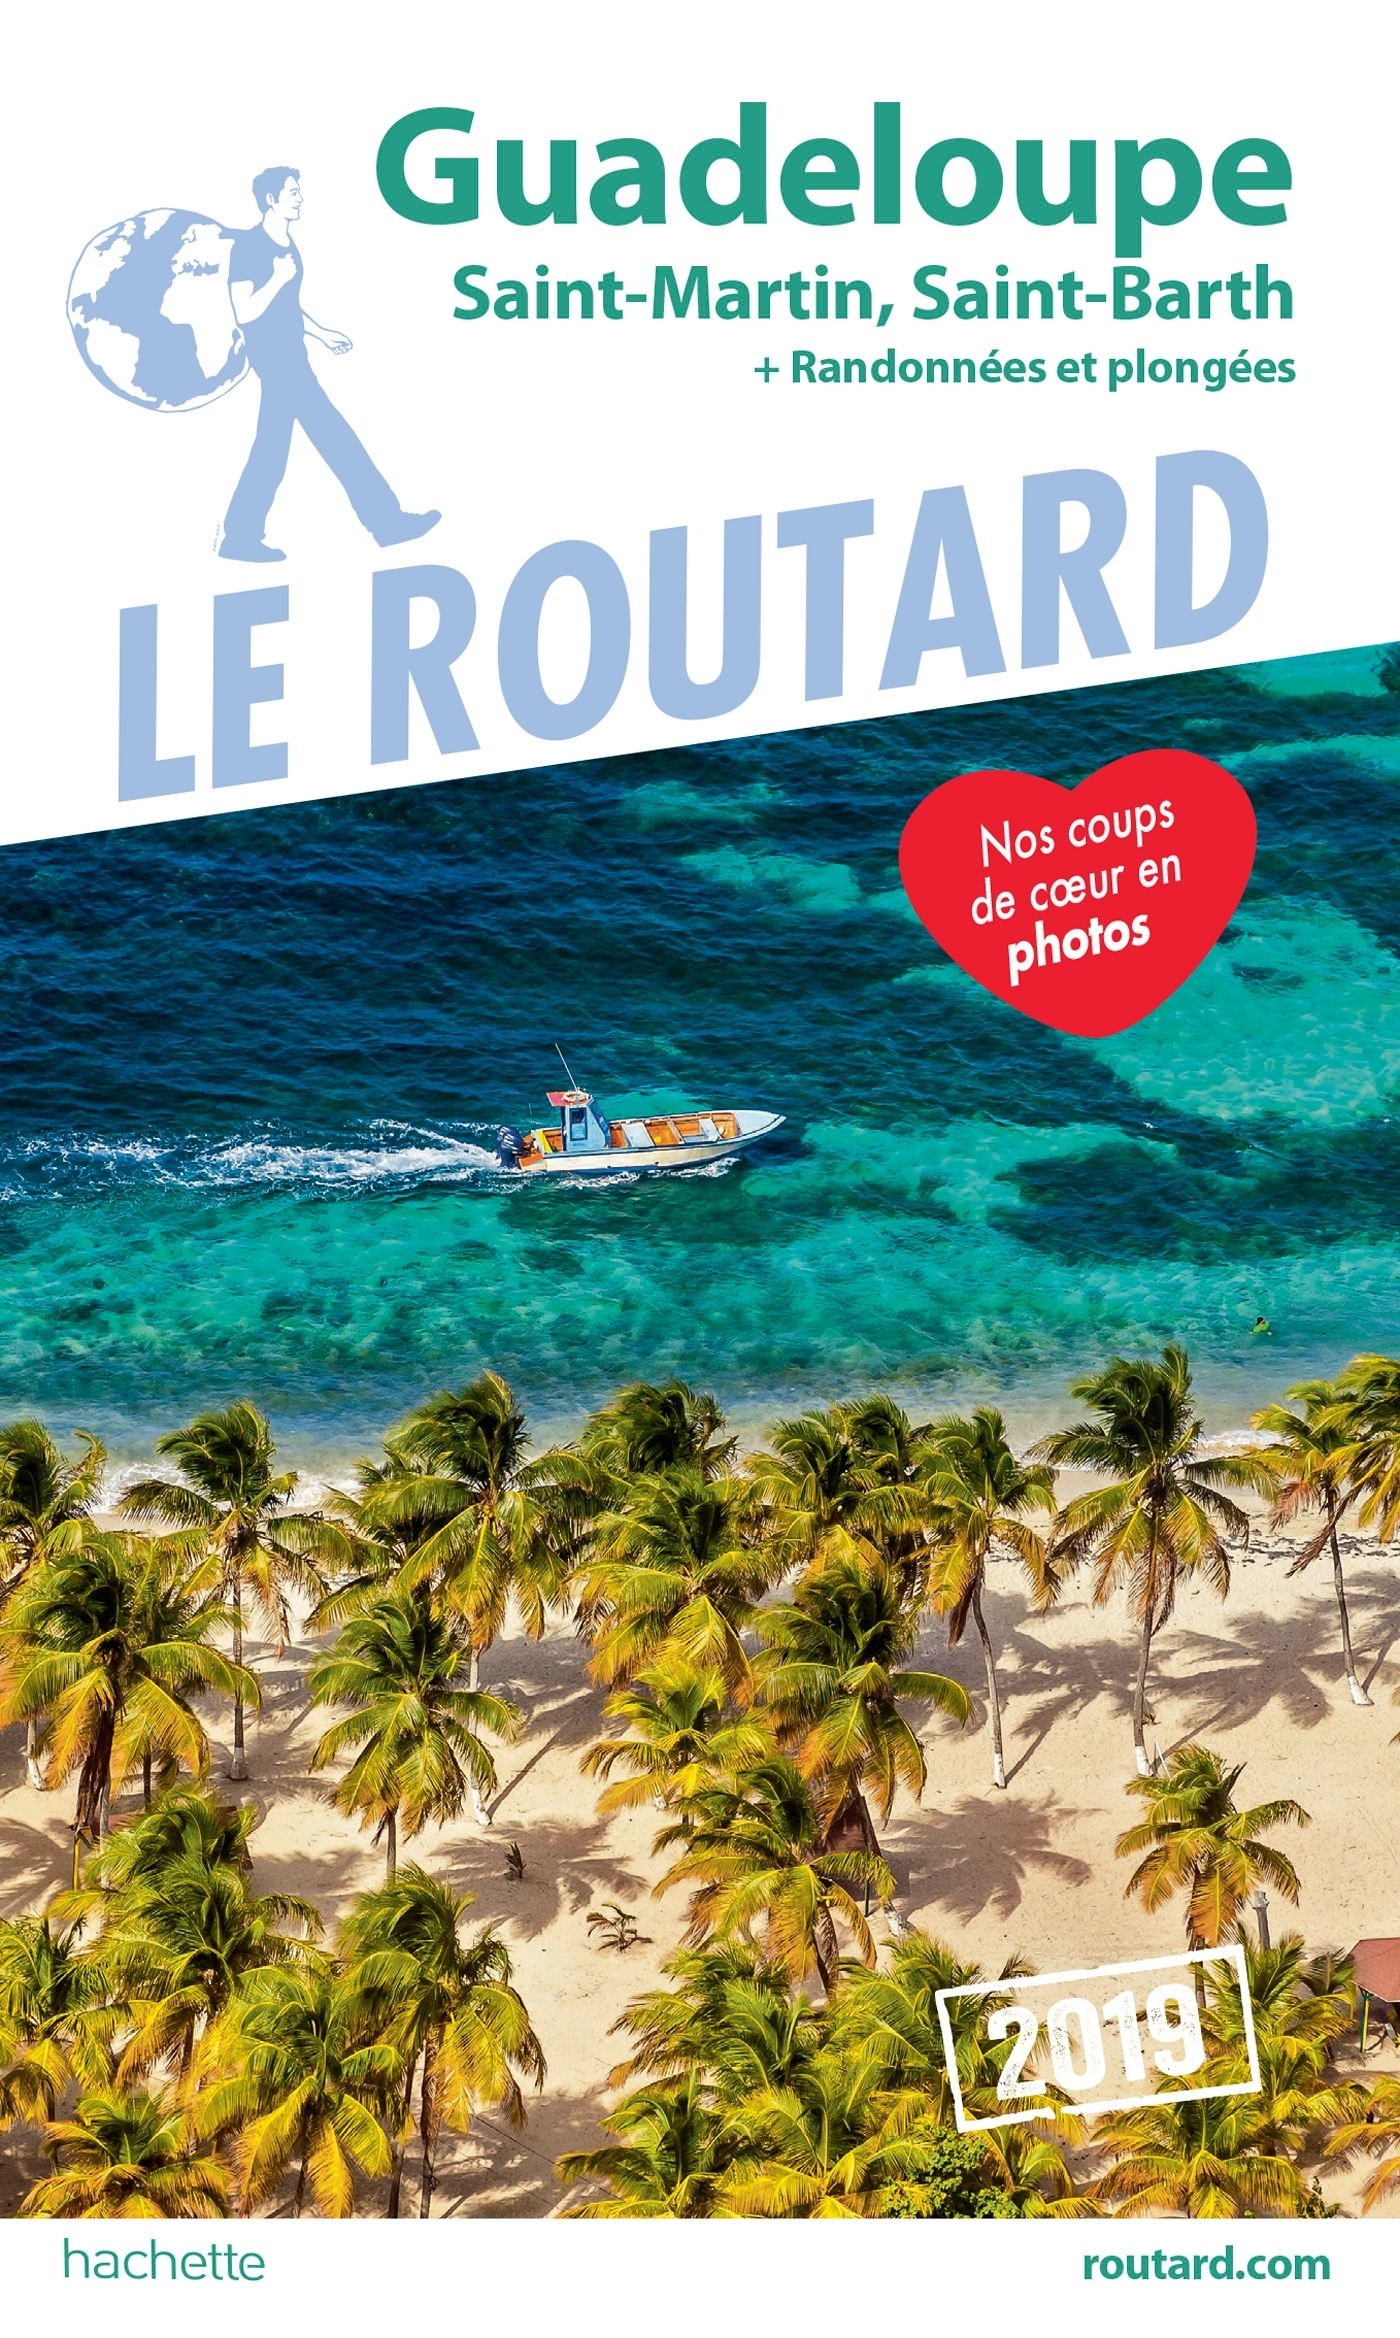 GUIDE DU ROUTARD GUADELOUPE 2019 - (ST MARTIN, ST BARTH) + RANDONNEES ET PLONGEES !